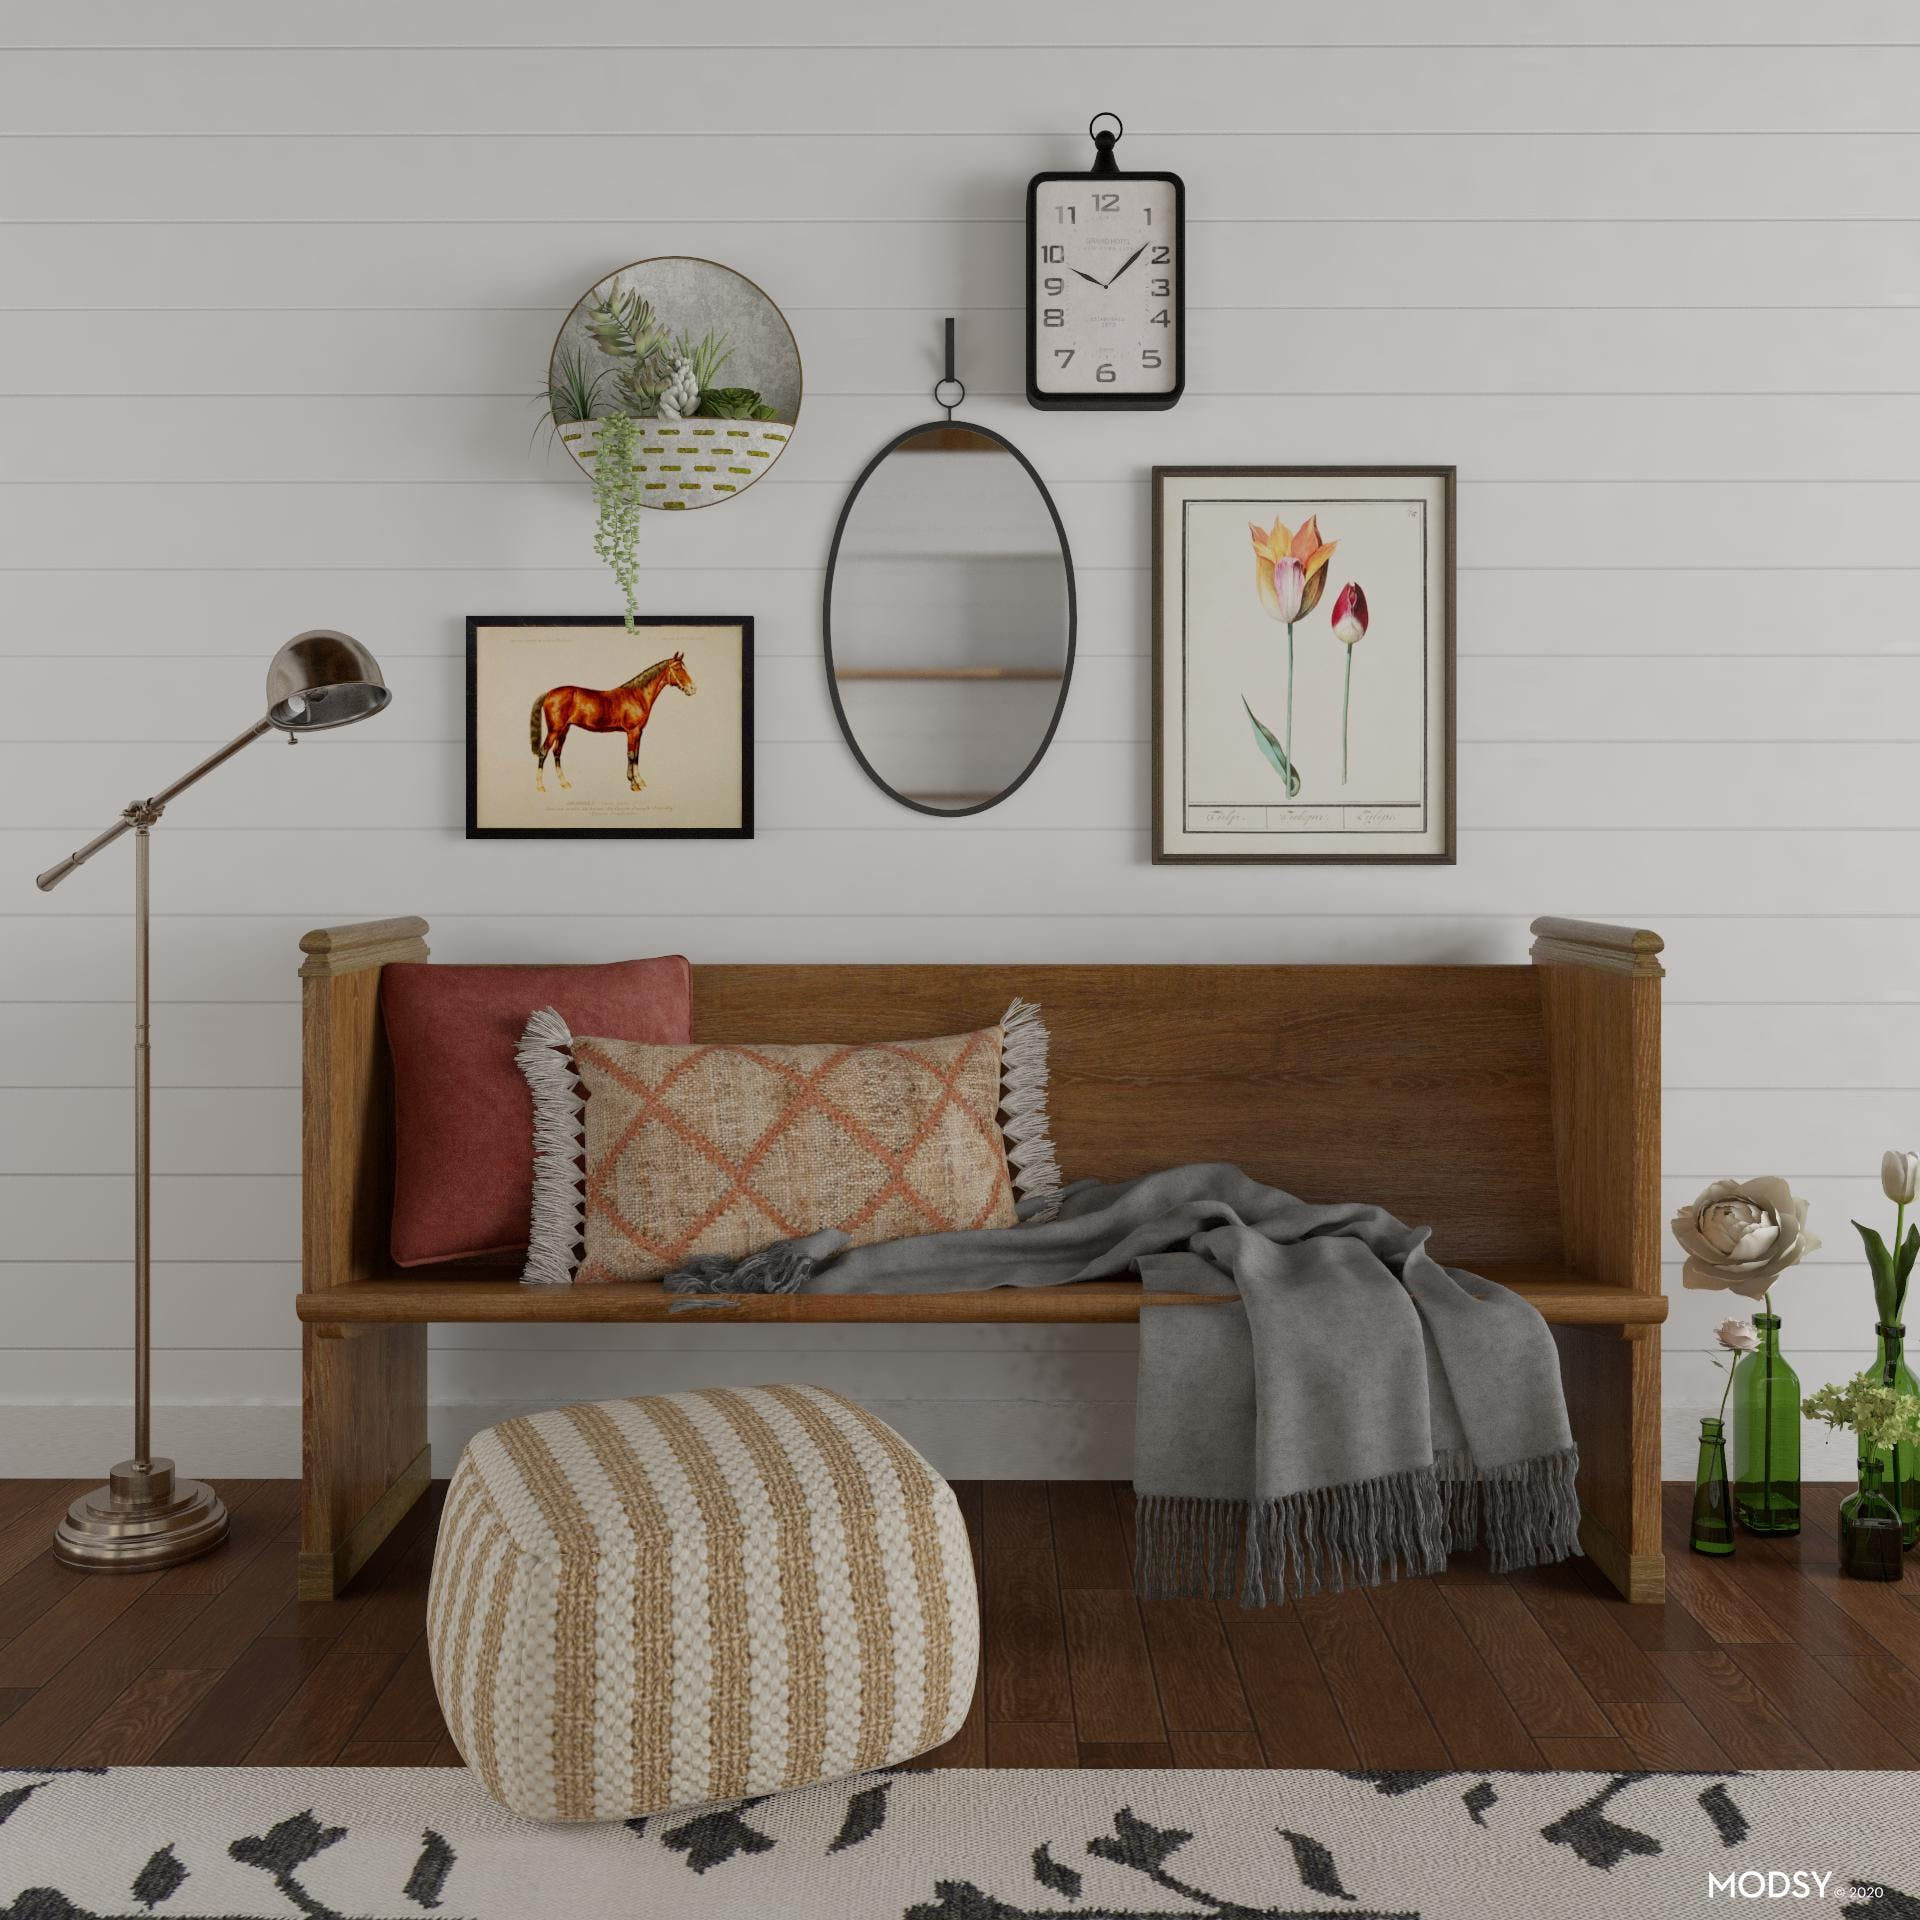 Sweet Gallery Wall with Country Farmhouse Charm